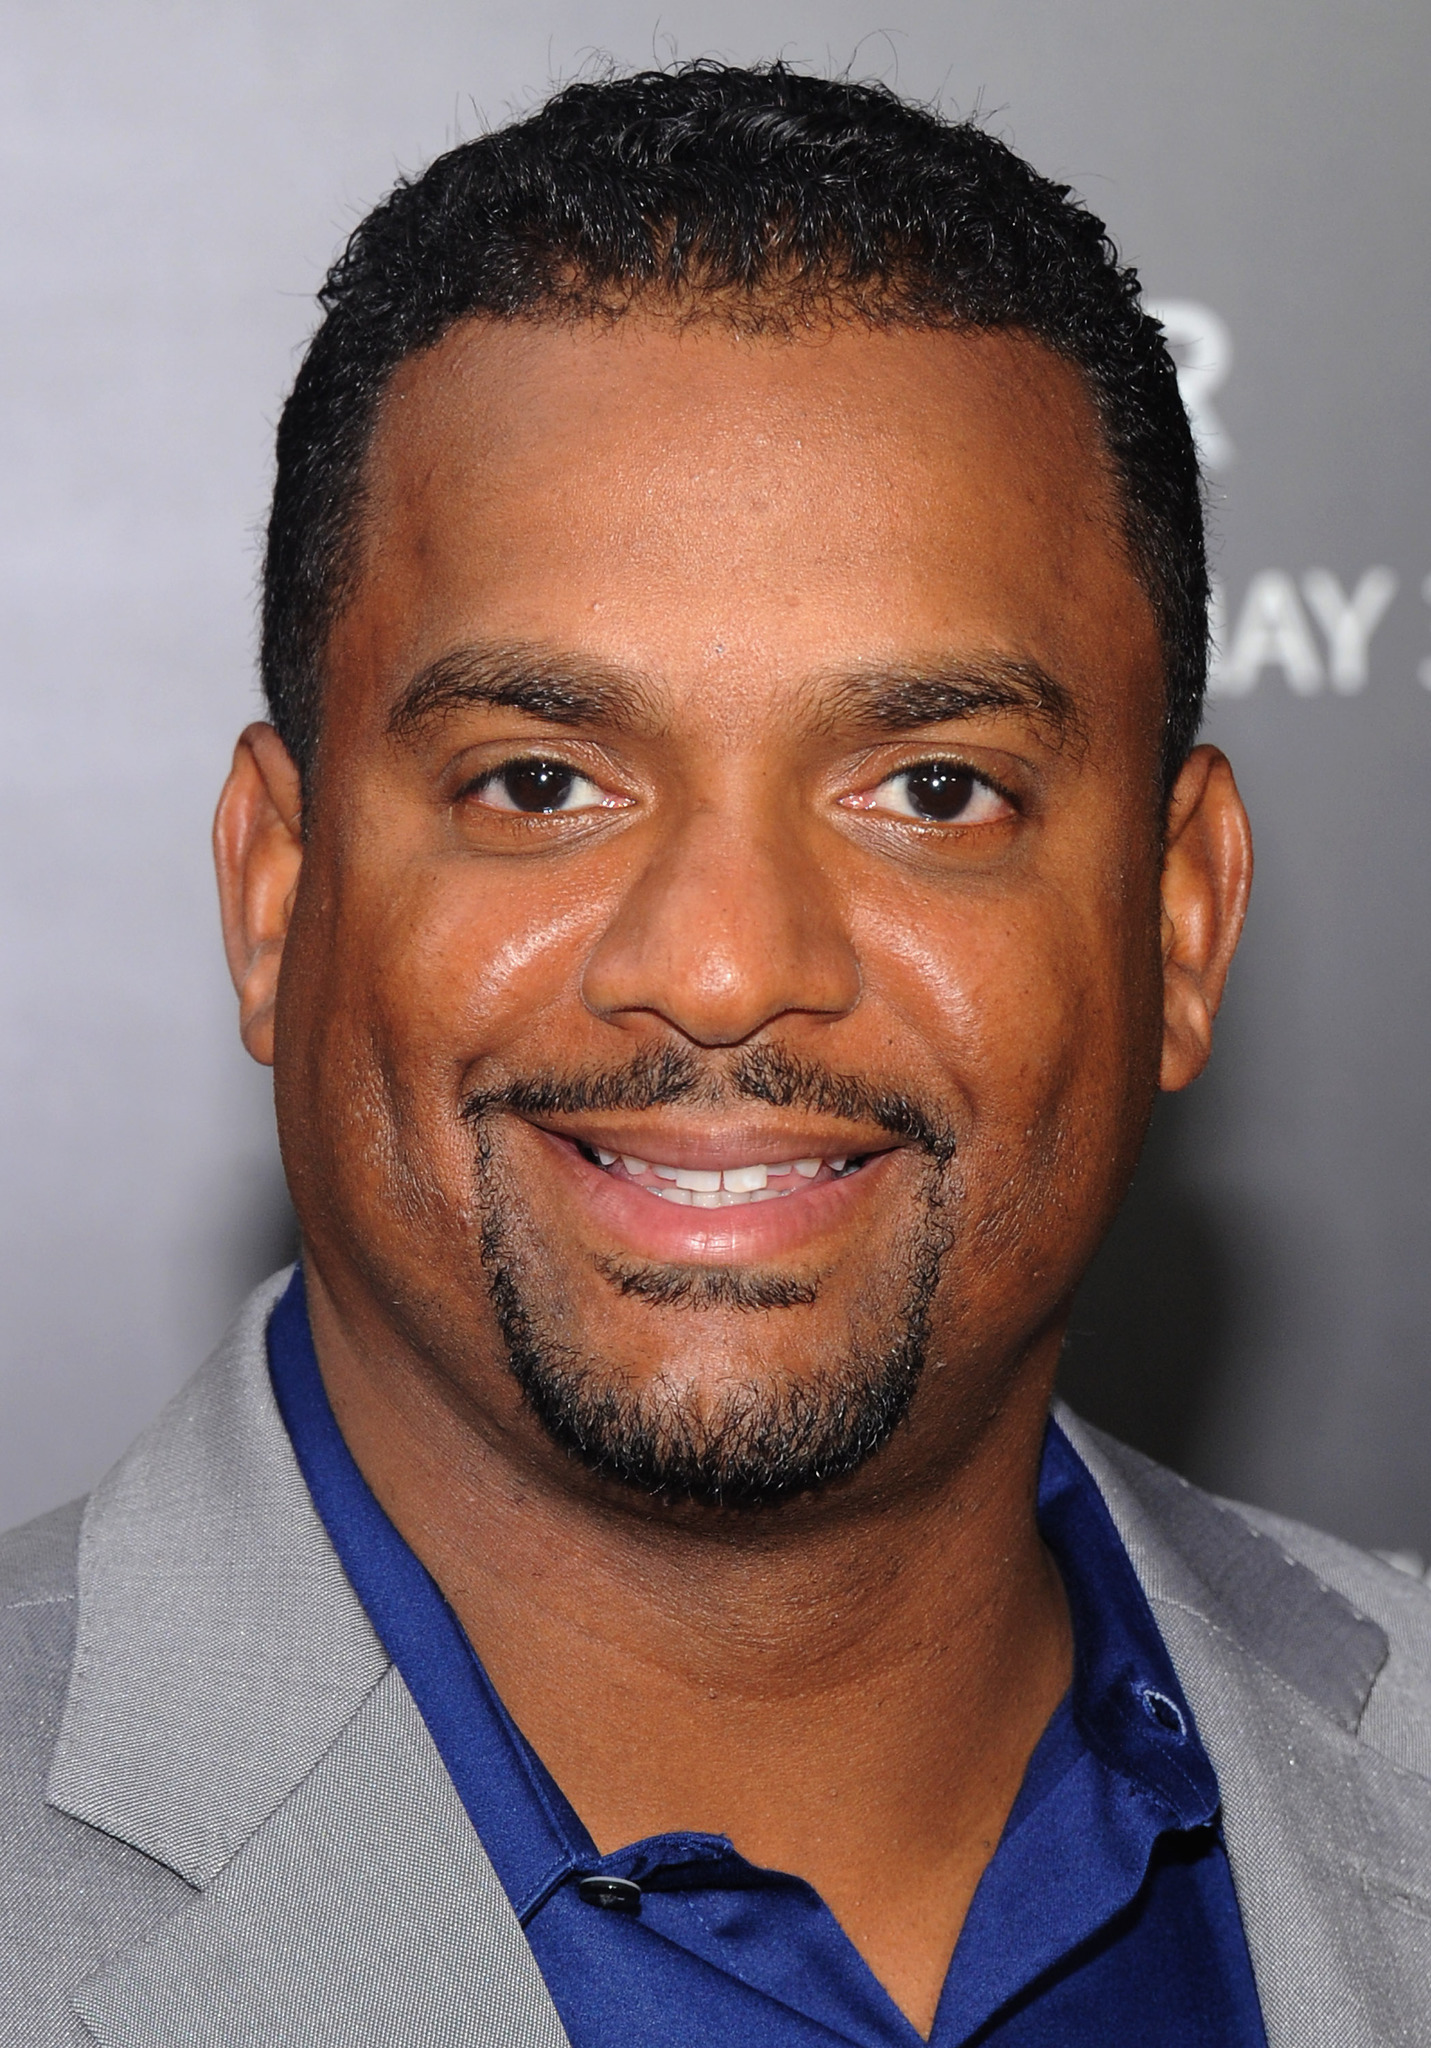 alfonso ribeiro instagramalfonso ribeiro breakin and poppin, alfonso ribeiro breakin and poppin book, alfonso ribeiro rap, alfonso ribeiro doing the carlton, alfonso ribeiro net worth, alfonso ribeiro death, alfonso ribeiro height, alfonso ribeiro dancing, alfonso ribeiro instagram, alfonso ribeiro dancing with the stars, alfonso ribeiro michael jackson, alfonso ribeiro afv, alfonso ribeiro, alfonso ribeiro dance, alfonso ribeiro pepsi, alfonso ribeiro fortnite, alfonso ribeiro fortnite dance, alfonso ribeiro jive, alfonso ribeiro carlton dance, alfonso ribeiro will smith